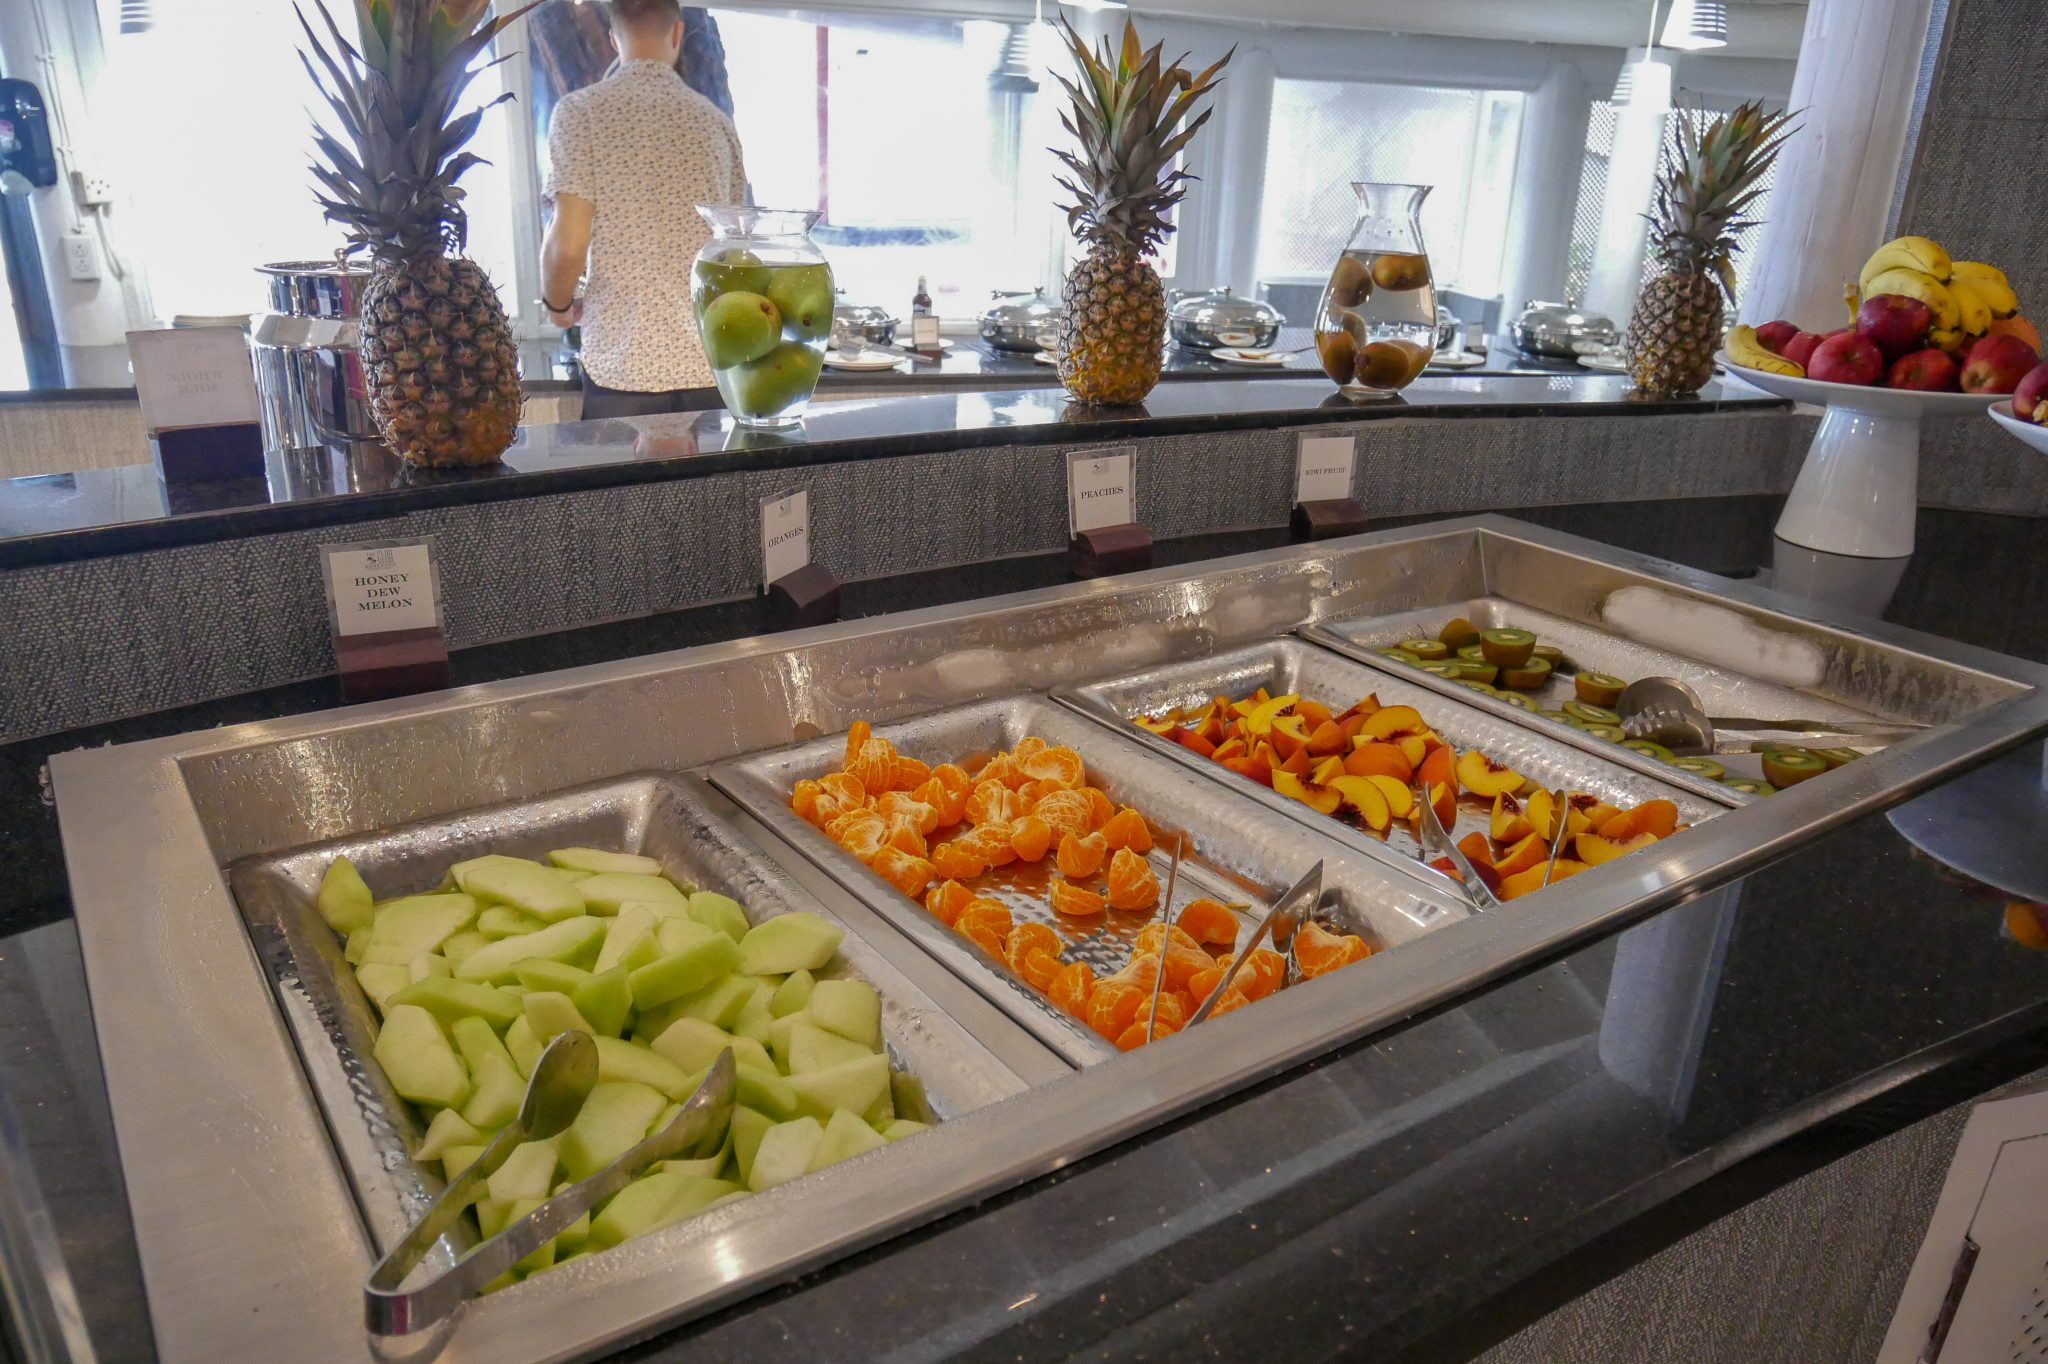 Trays of fruit in the chiller